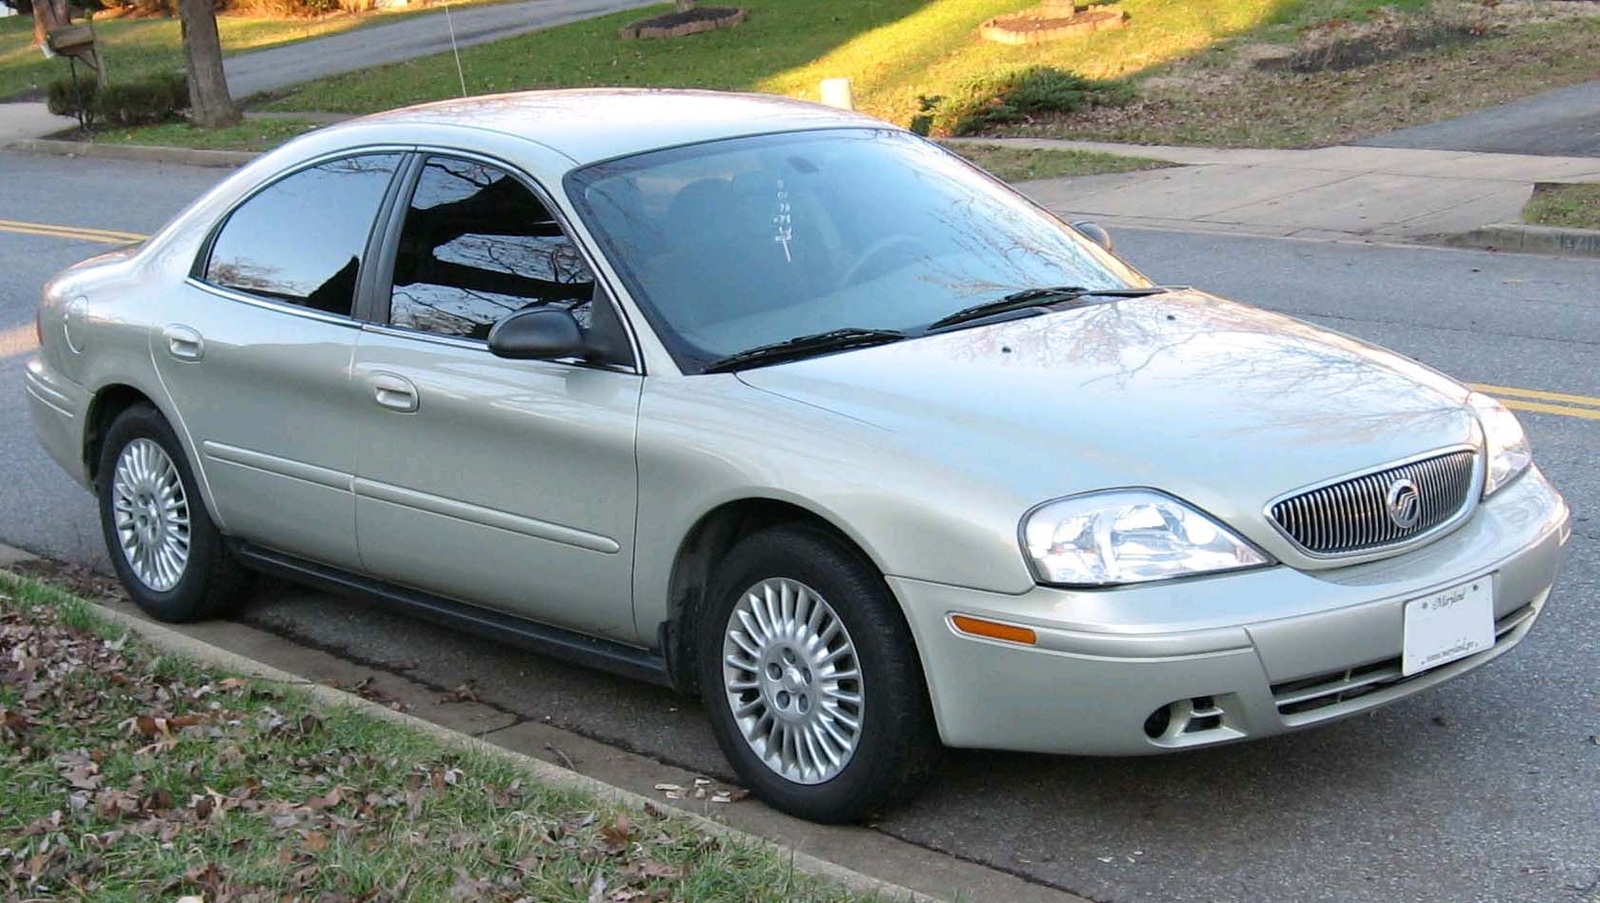 2004 Mercury Sable picture, exterior